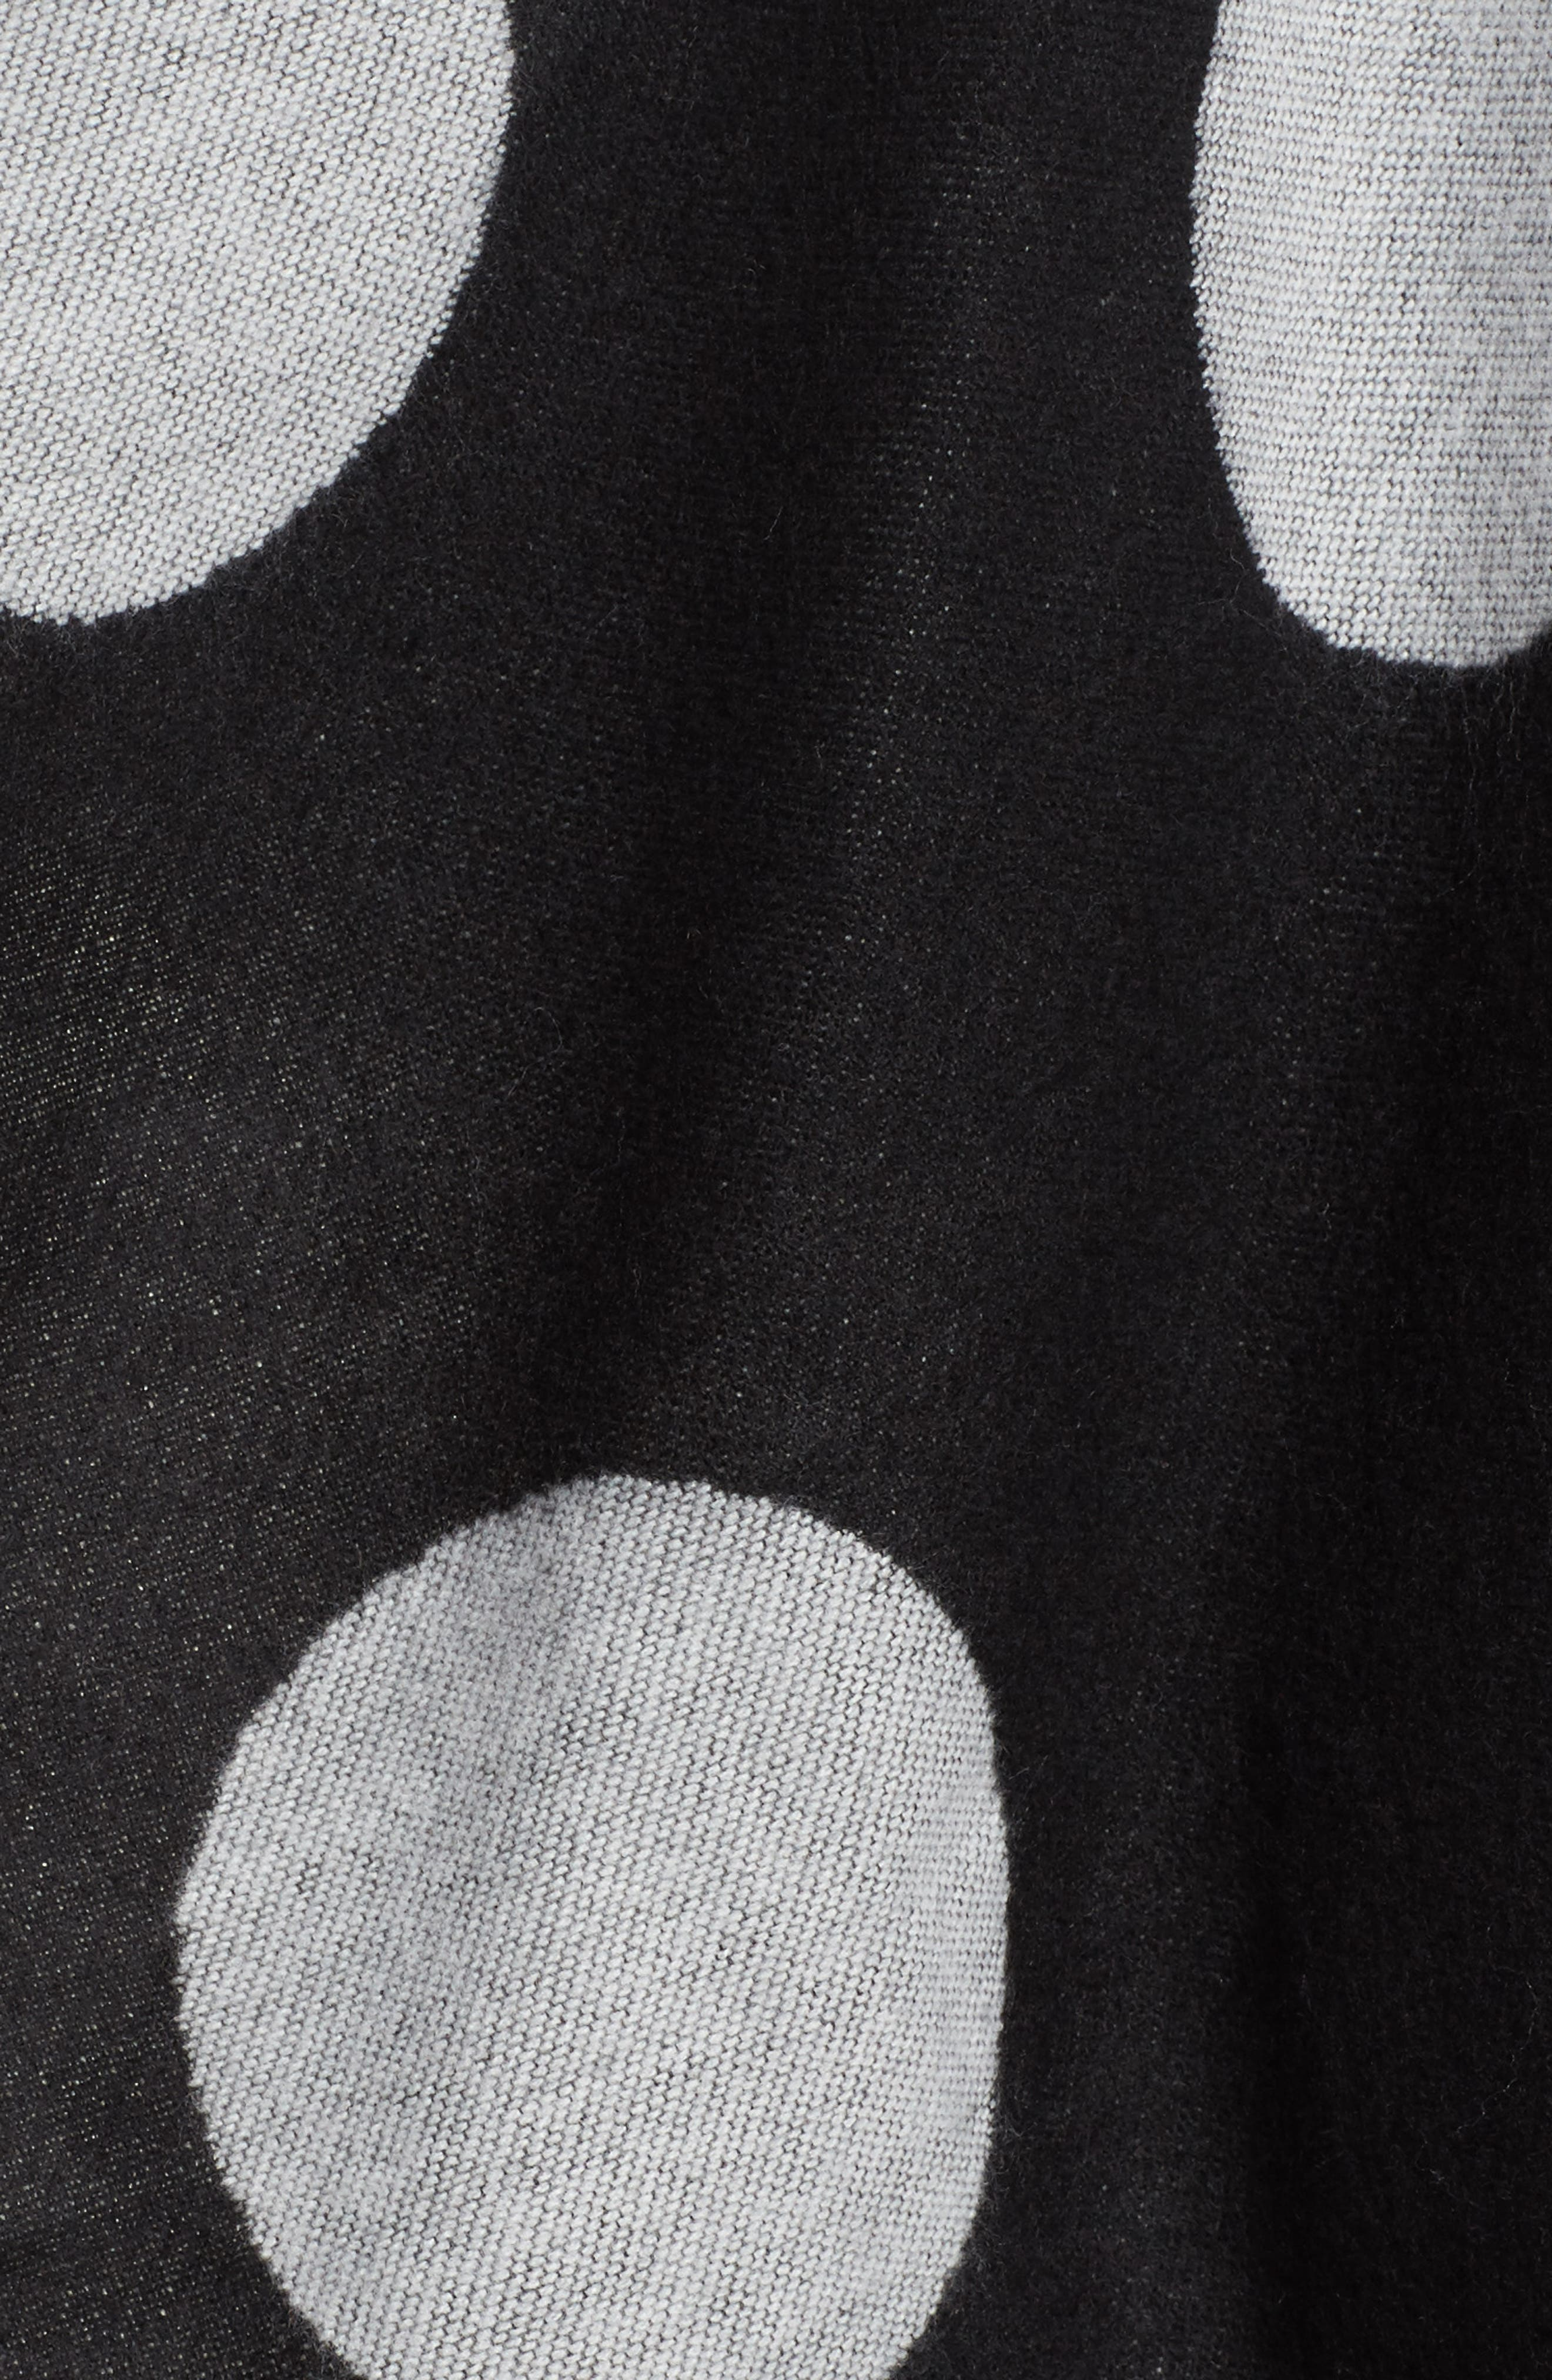 Polka Dot Ruana,                             Alternate thumbnail 5, color,                             Black/ Ivory